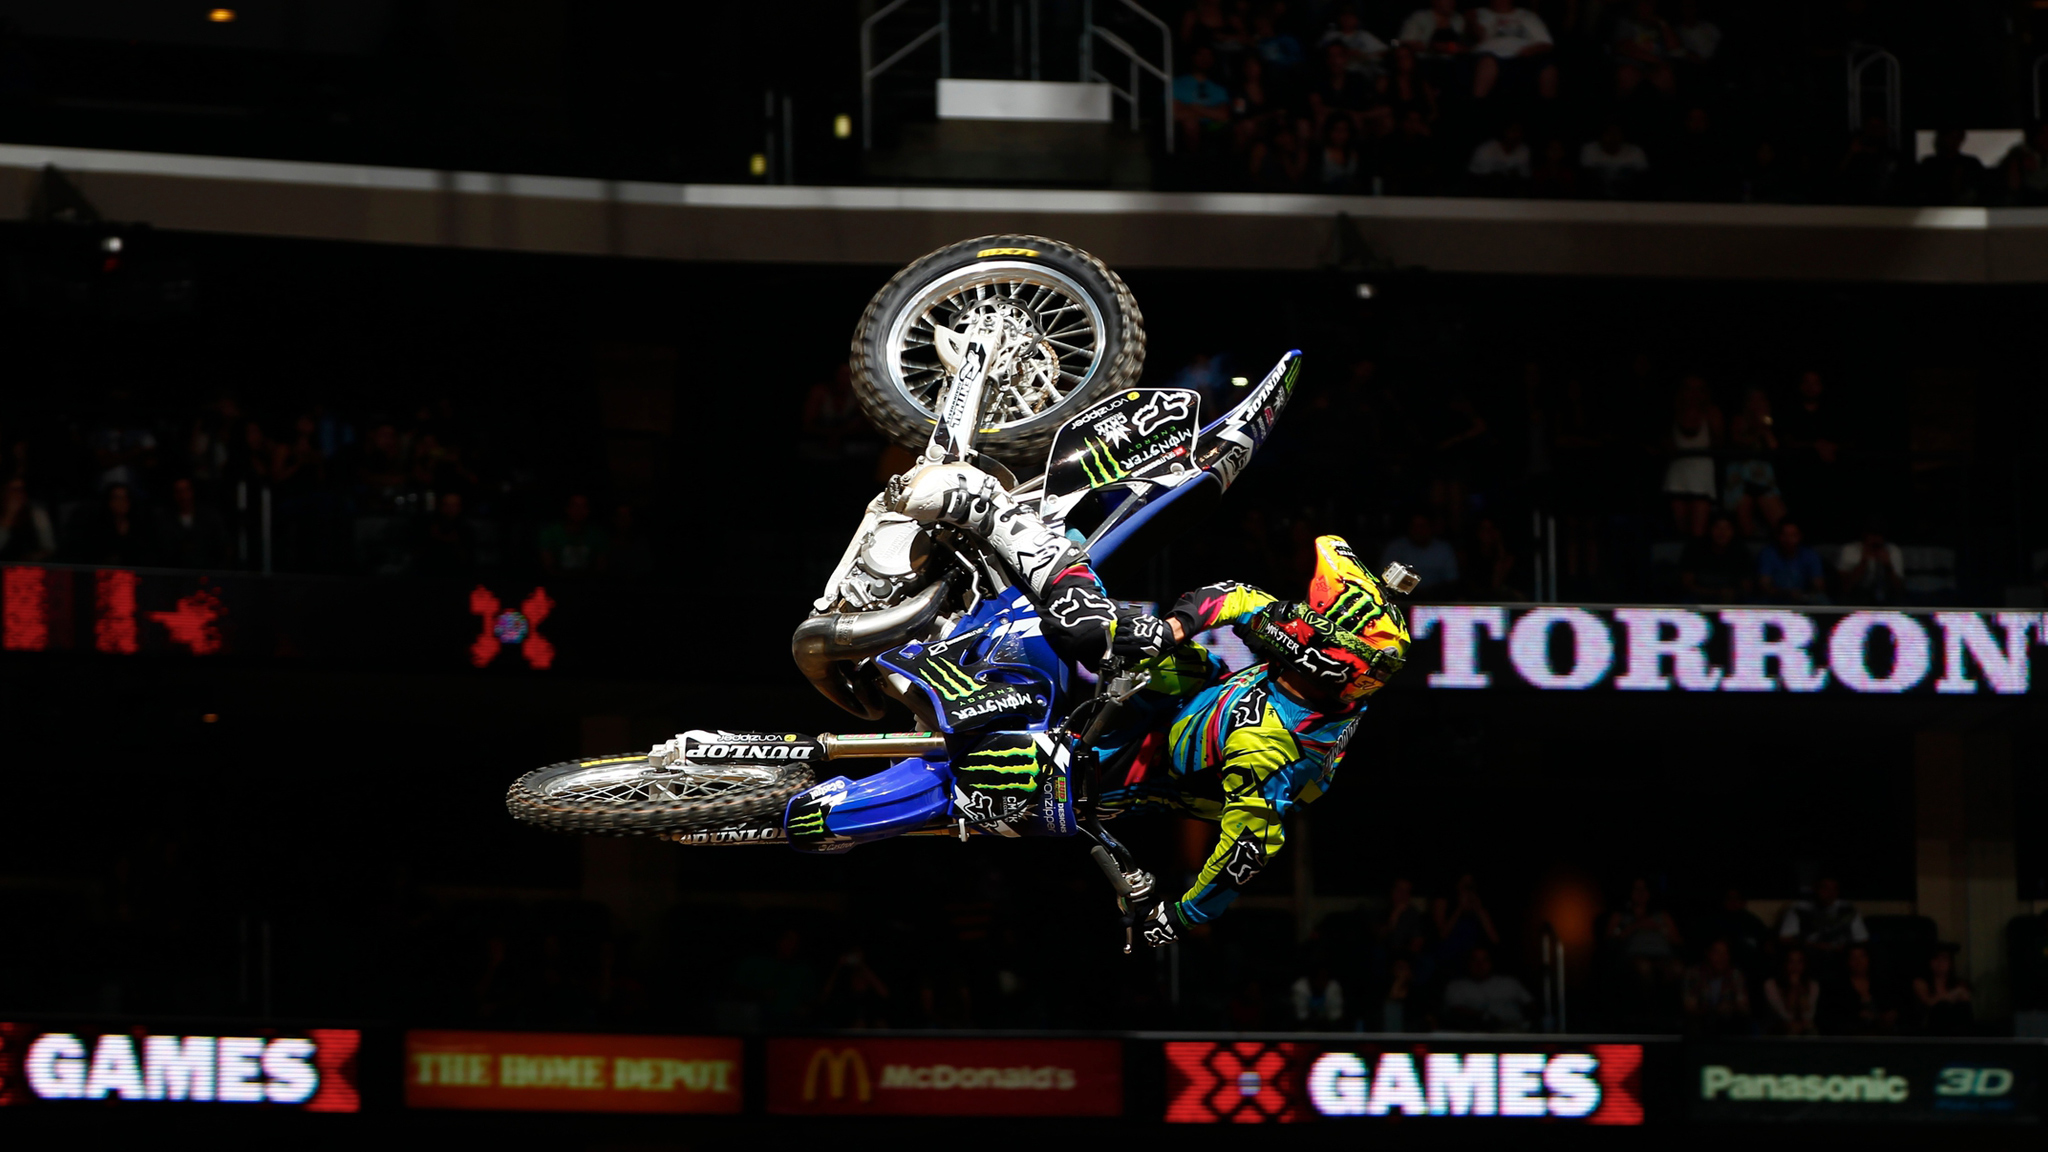 Spain's Edgar Torronteras will have the home crowd support in Barcelona for Moto X Speed & Style.